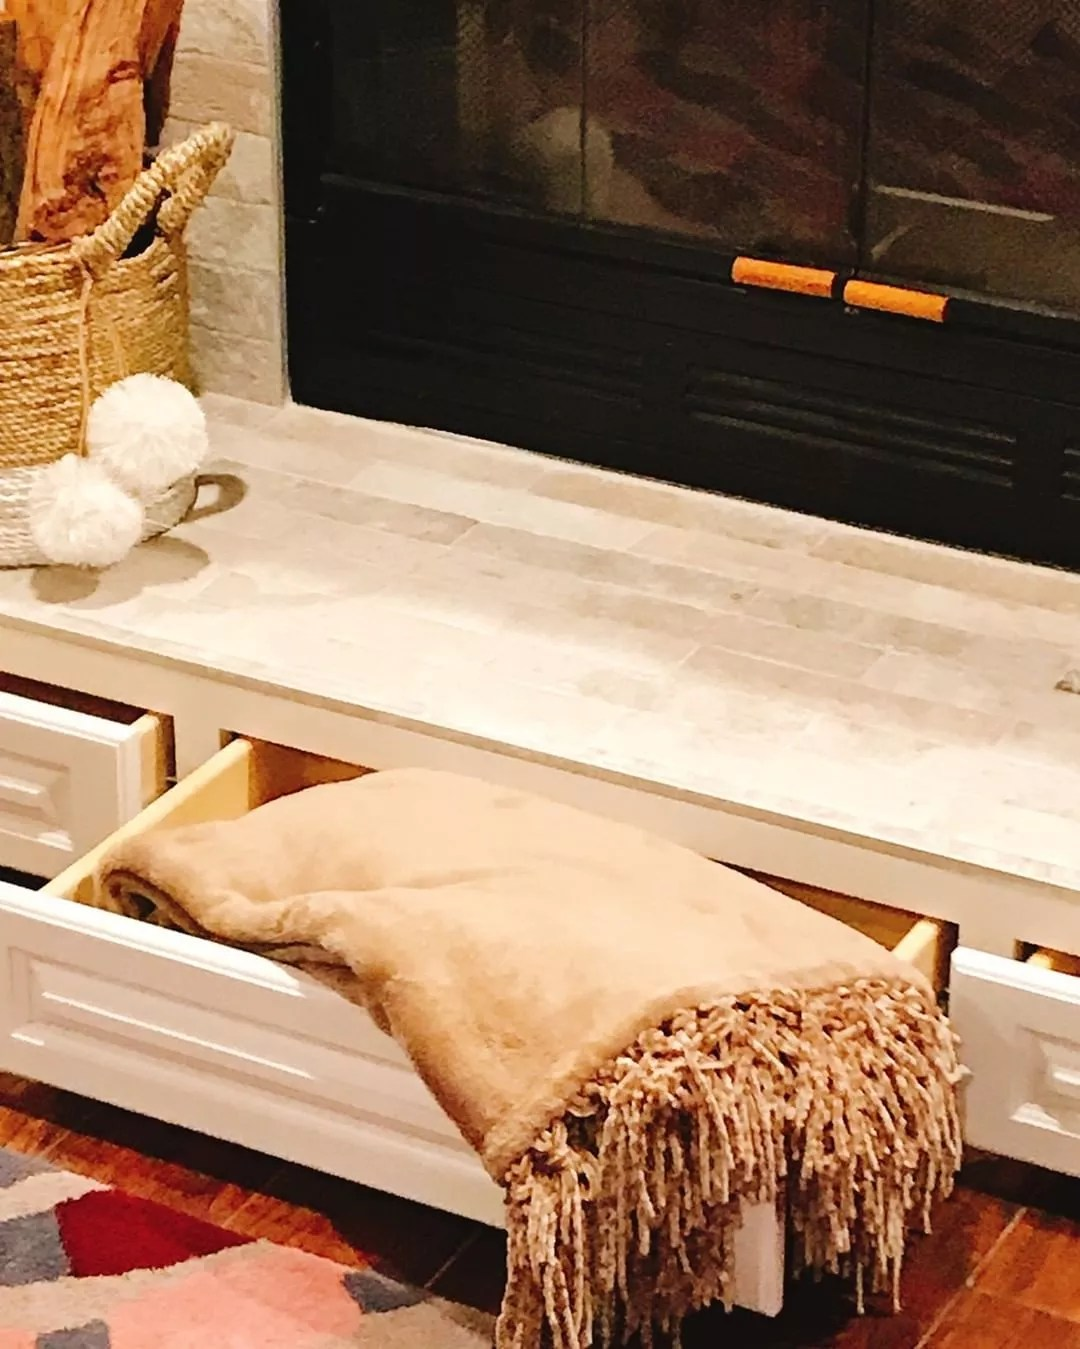 Fireplace Mantle with Built in Drawers Beneath Fireplace. Photo by Instagram user @lovedecor.homestaging